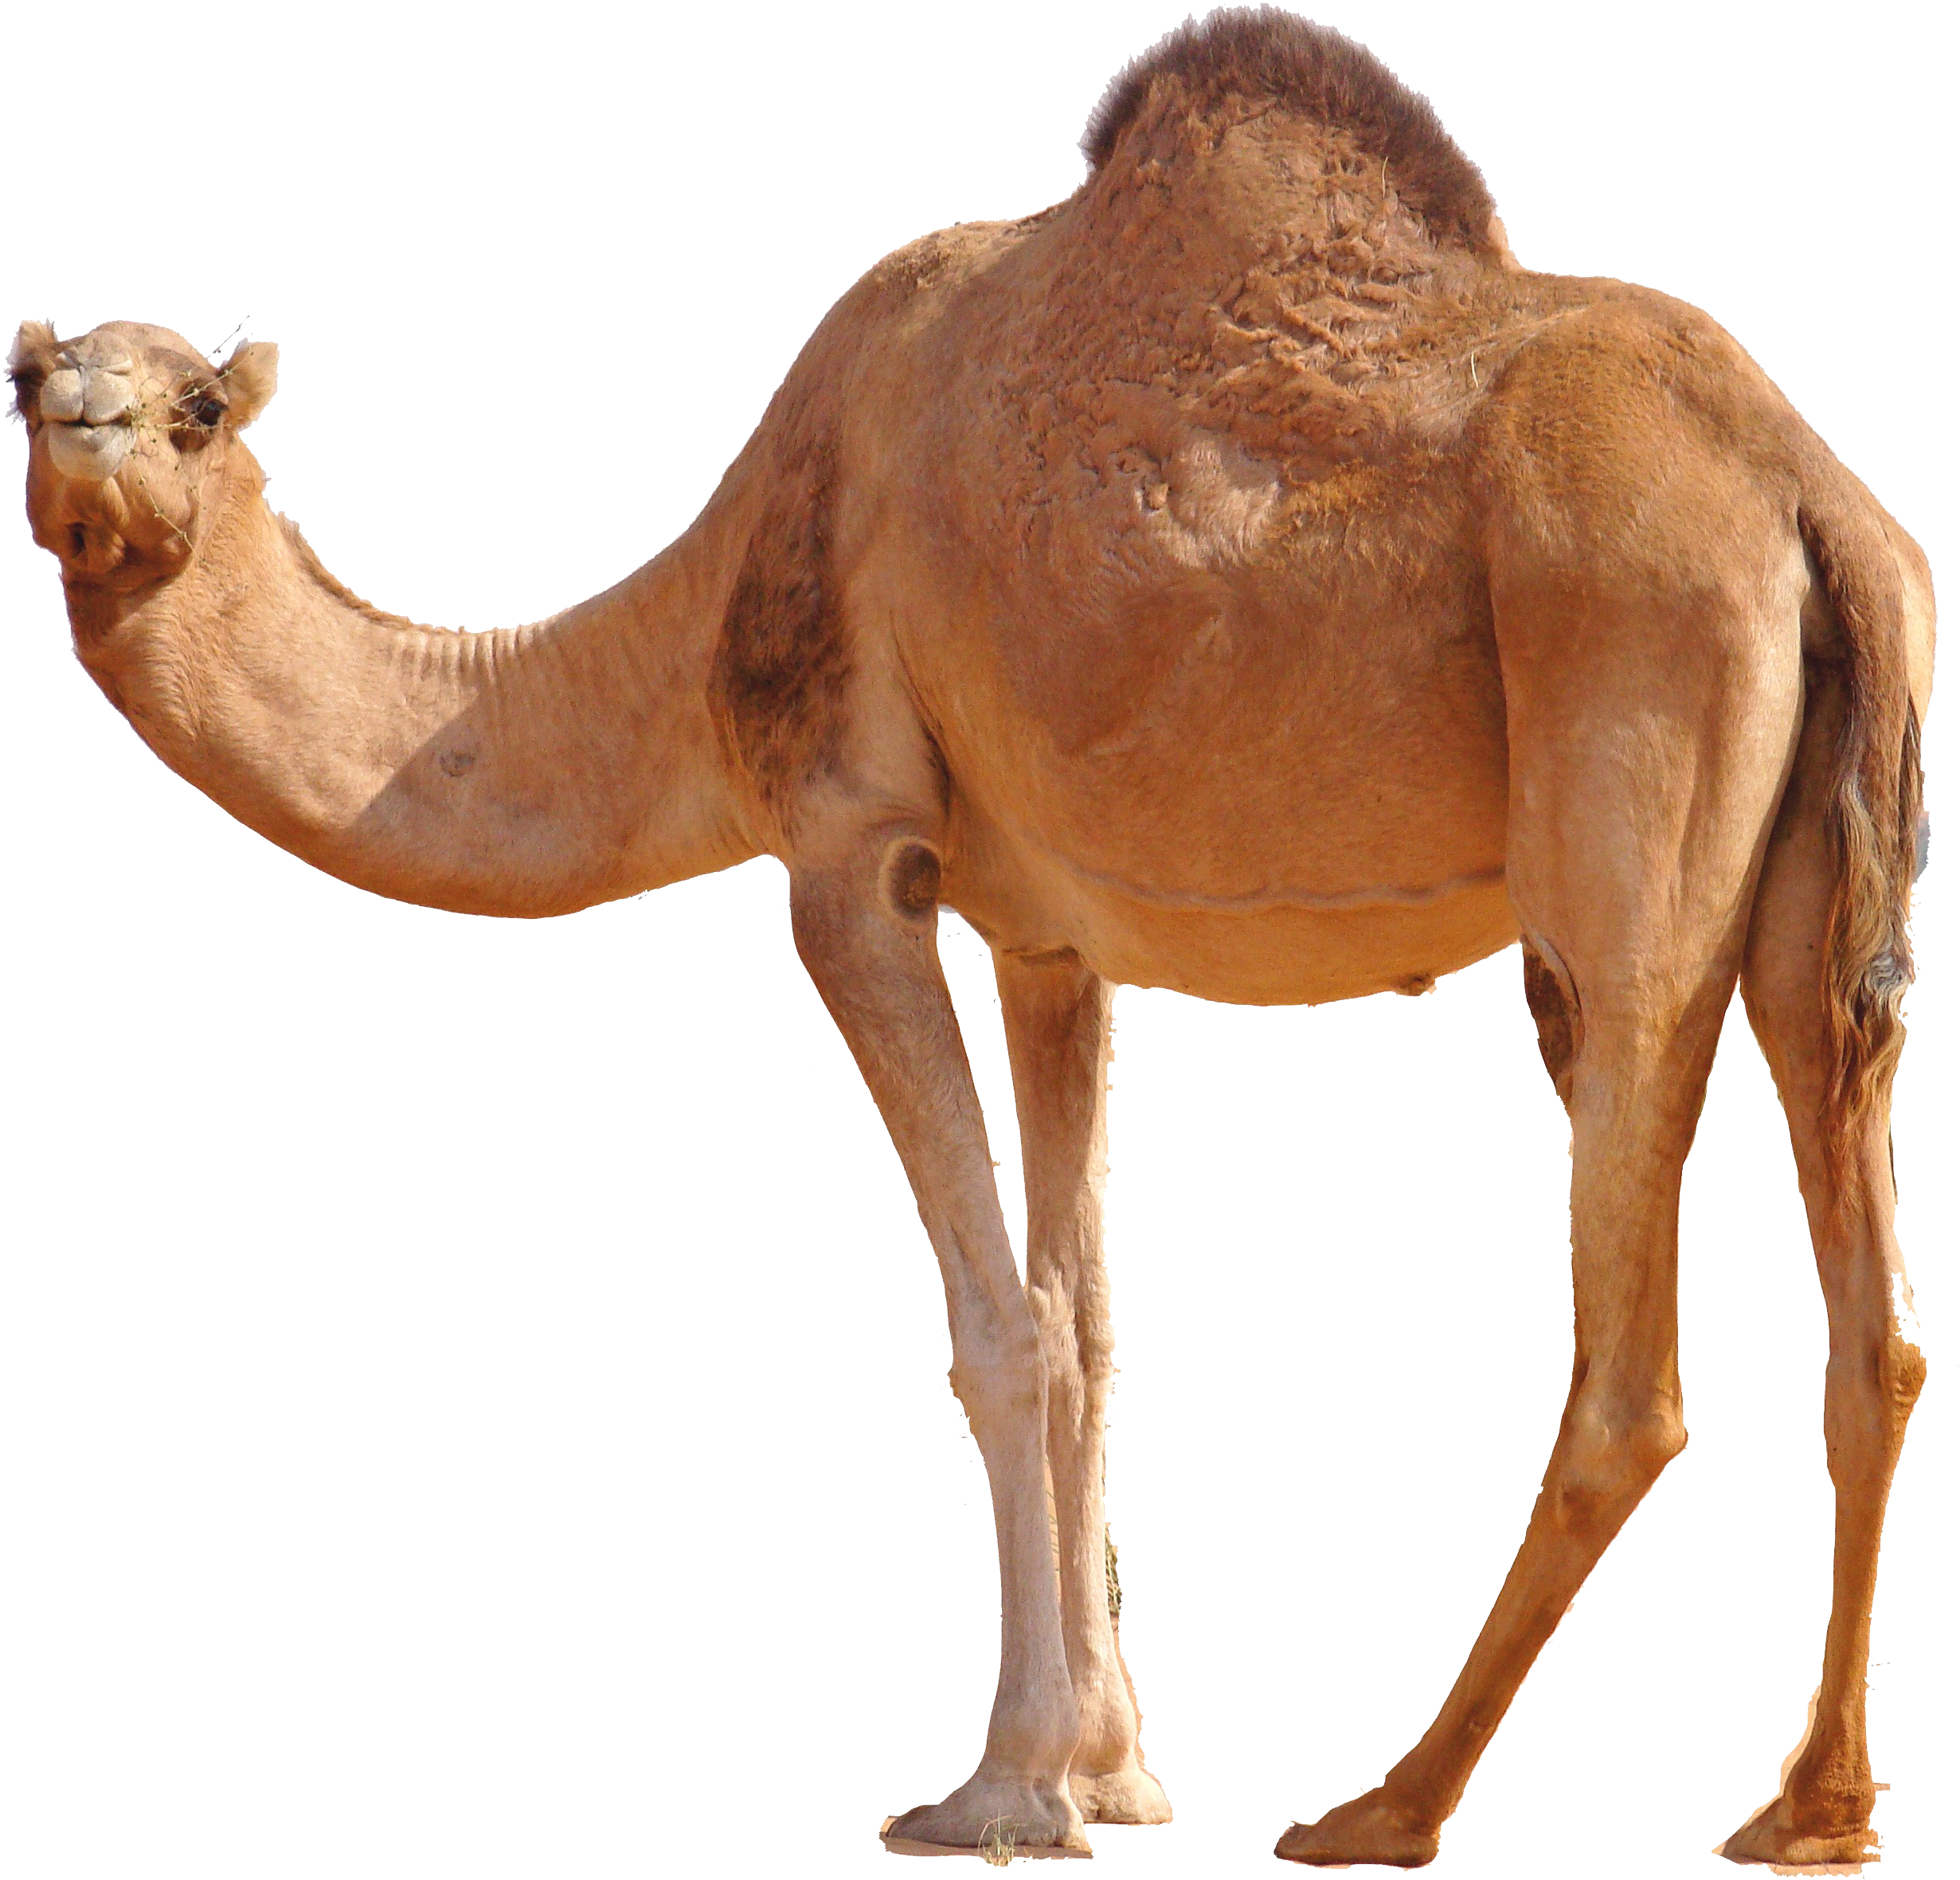 camel png image  free camel png pictures camel clipart patterns camel clipart black and white free